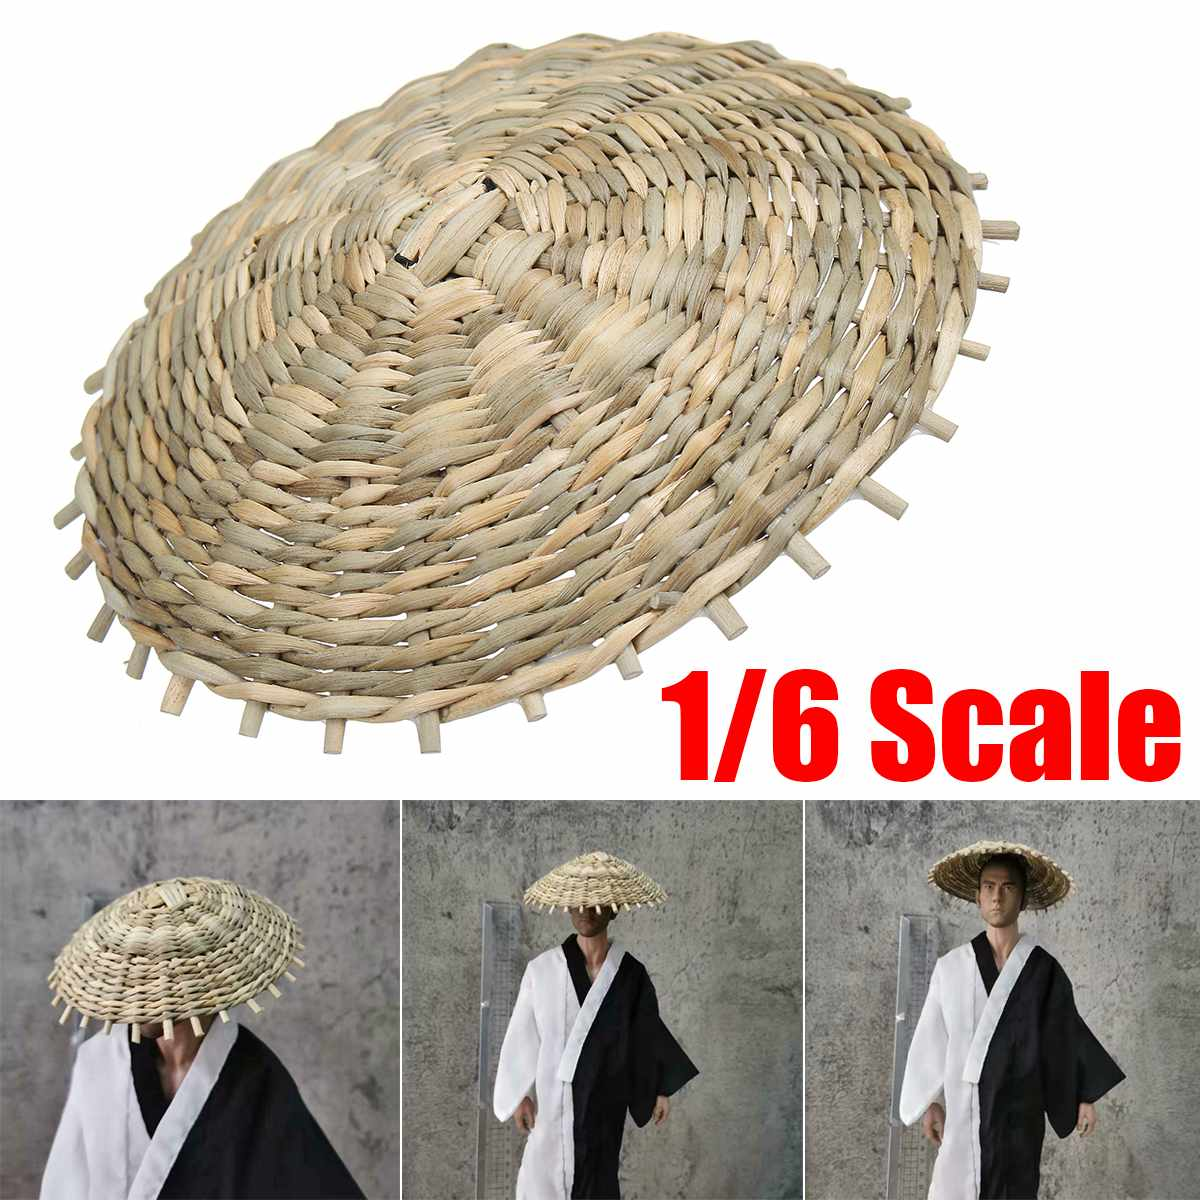 1:6 Scale Hat Model Bamboo Hat For Japanese Samurai